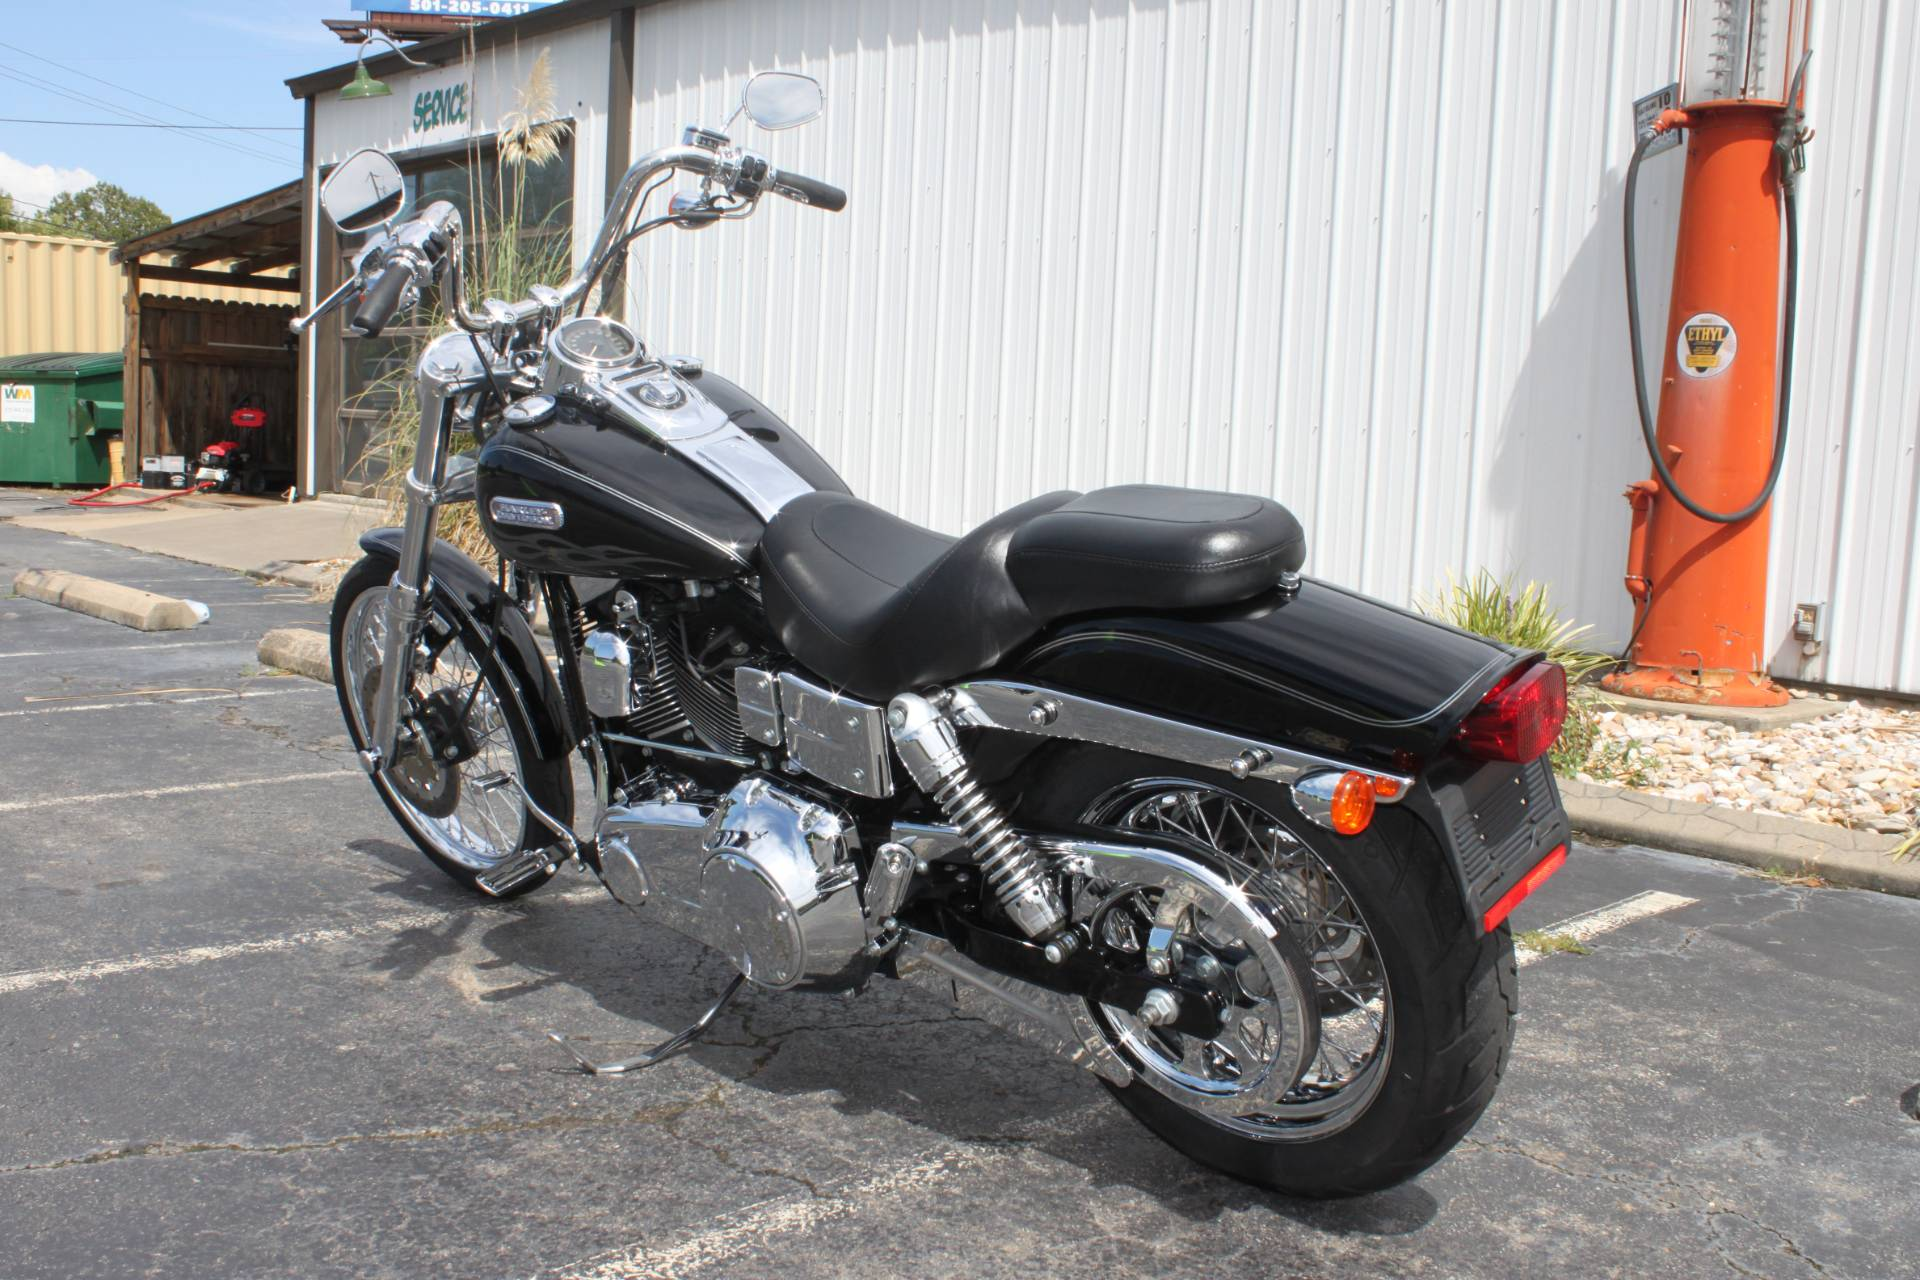 2006 Harley-Davidson FXDWG DYNA WIDE GLIDE in Greenbrier, Arkansas - Photo 14